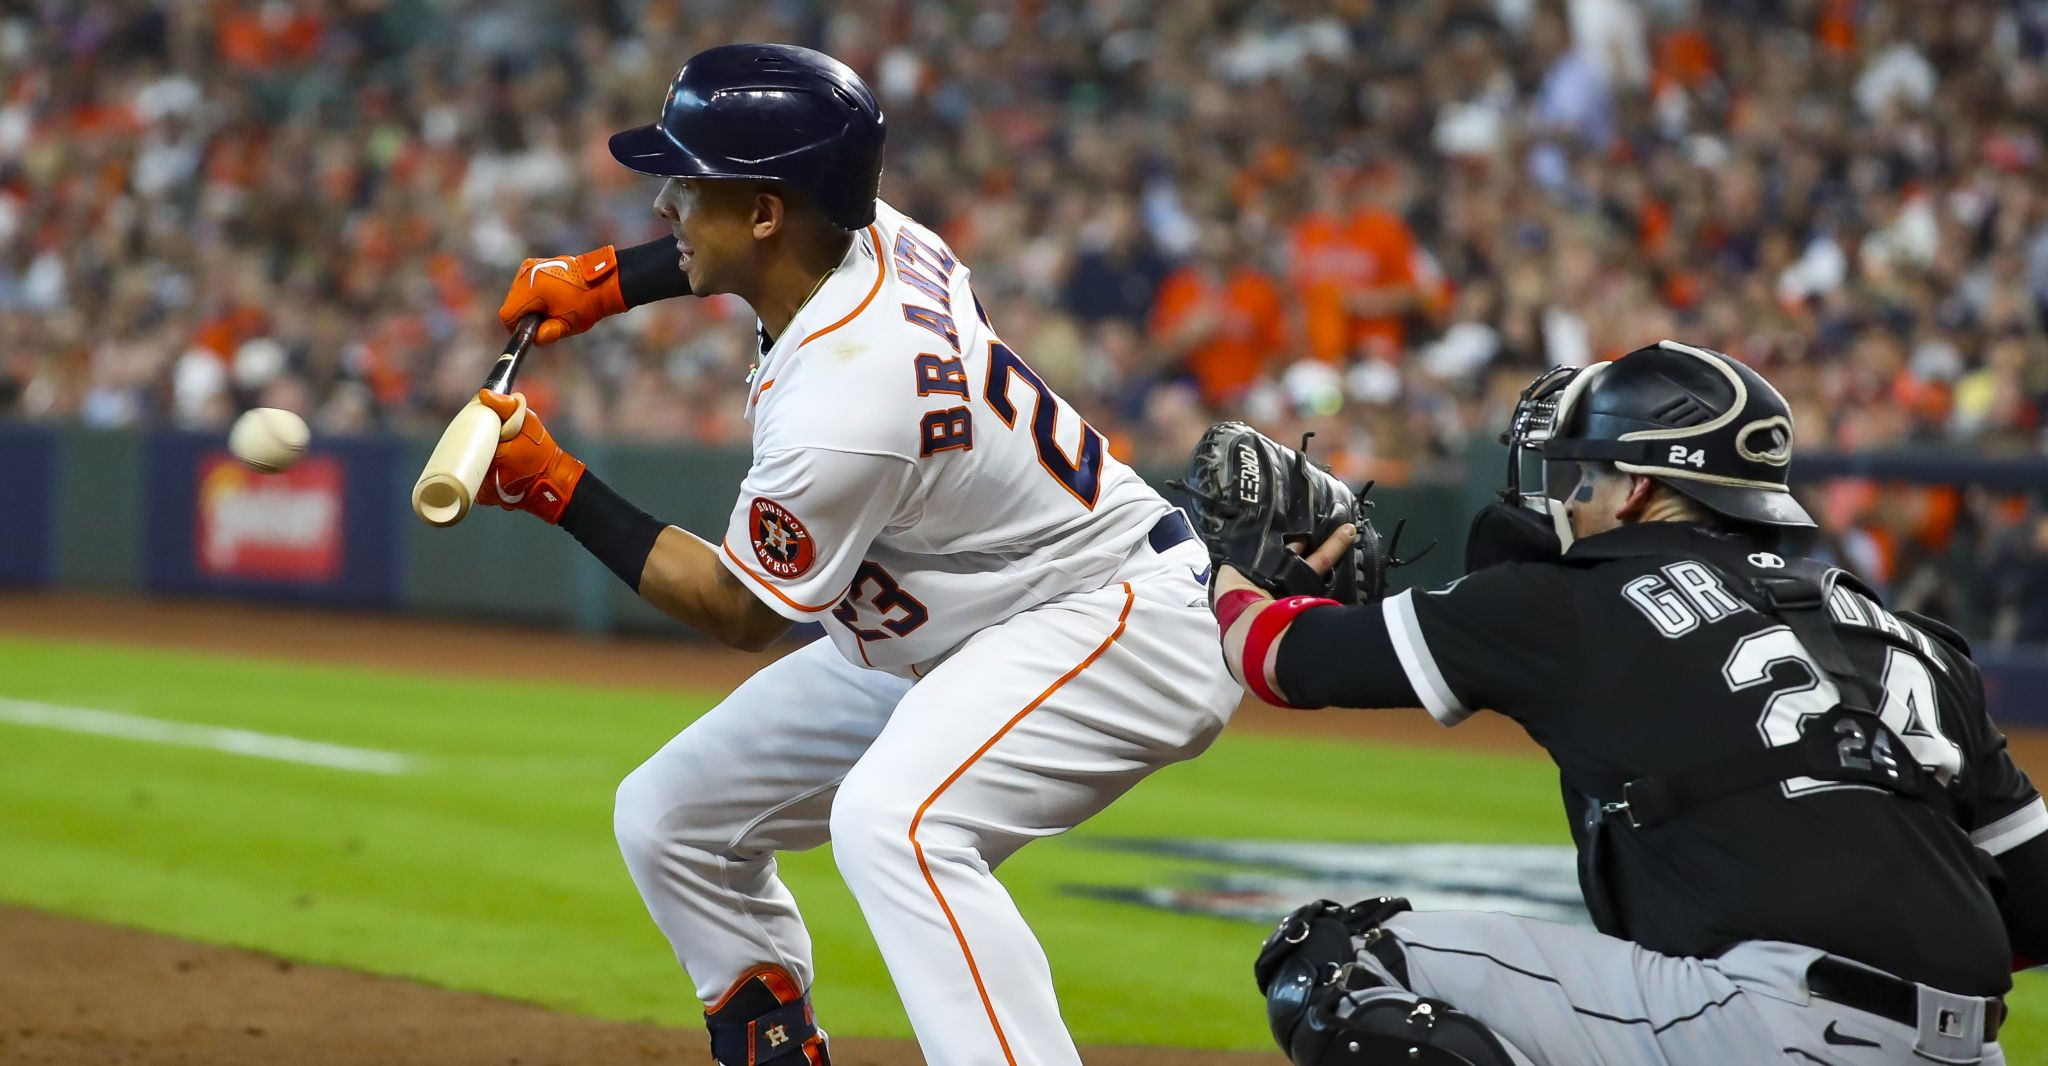 Smith: Michael Brantley returns at perfect time for Astros - Houston Chronicle